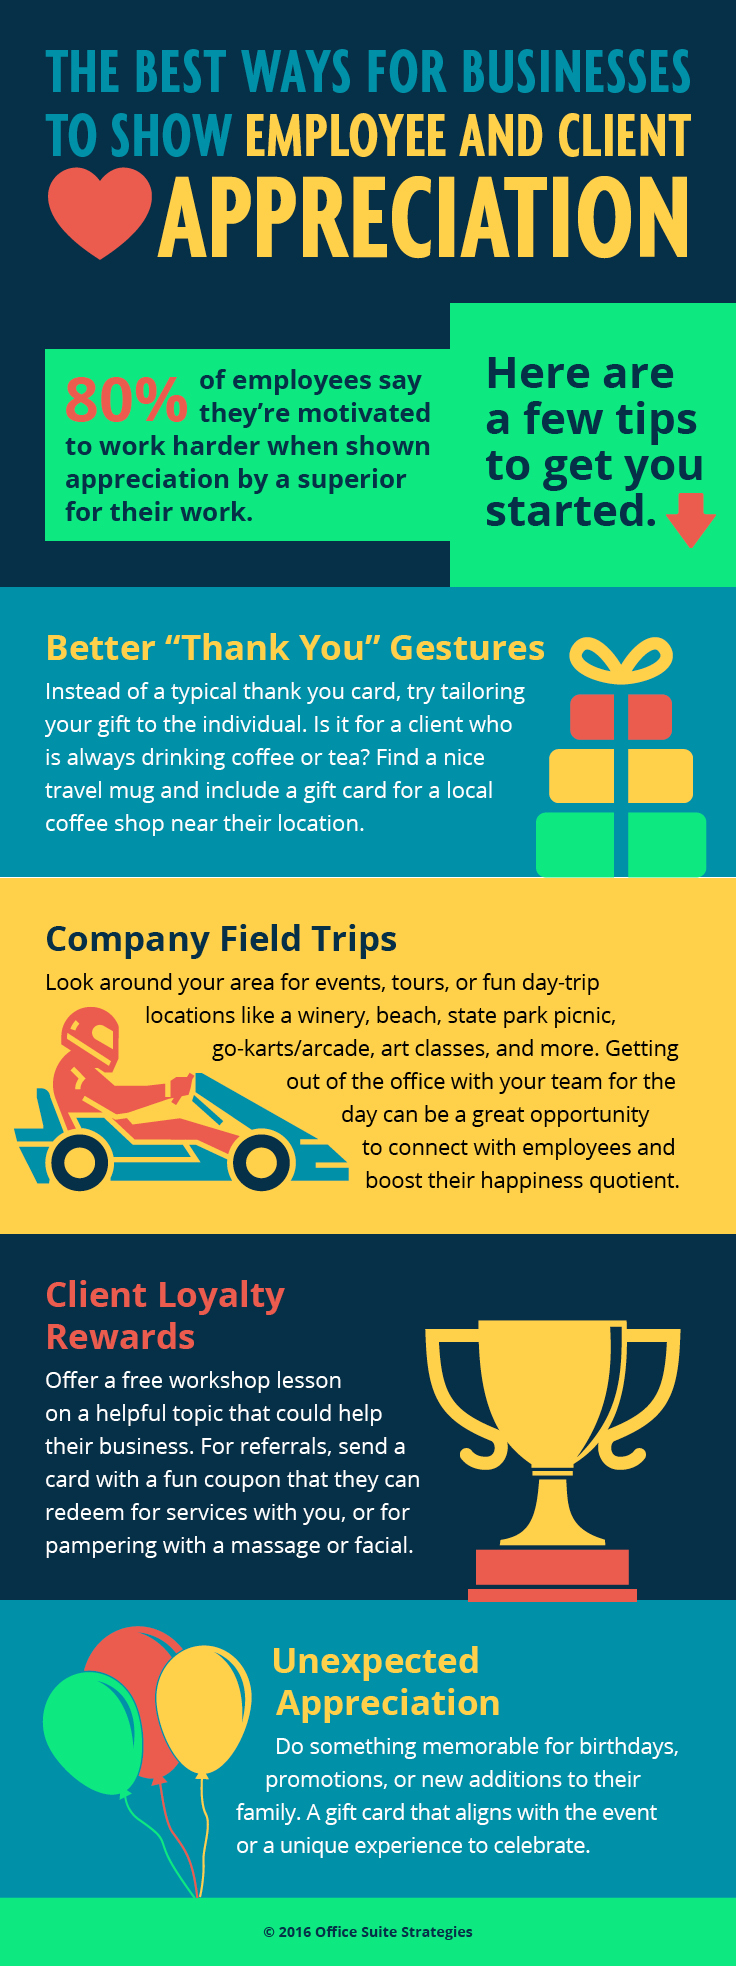 ways-to-show-client-and-employee-appreciation-infographic